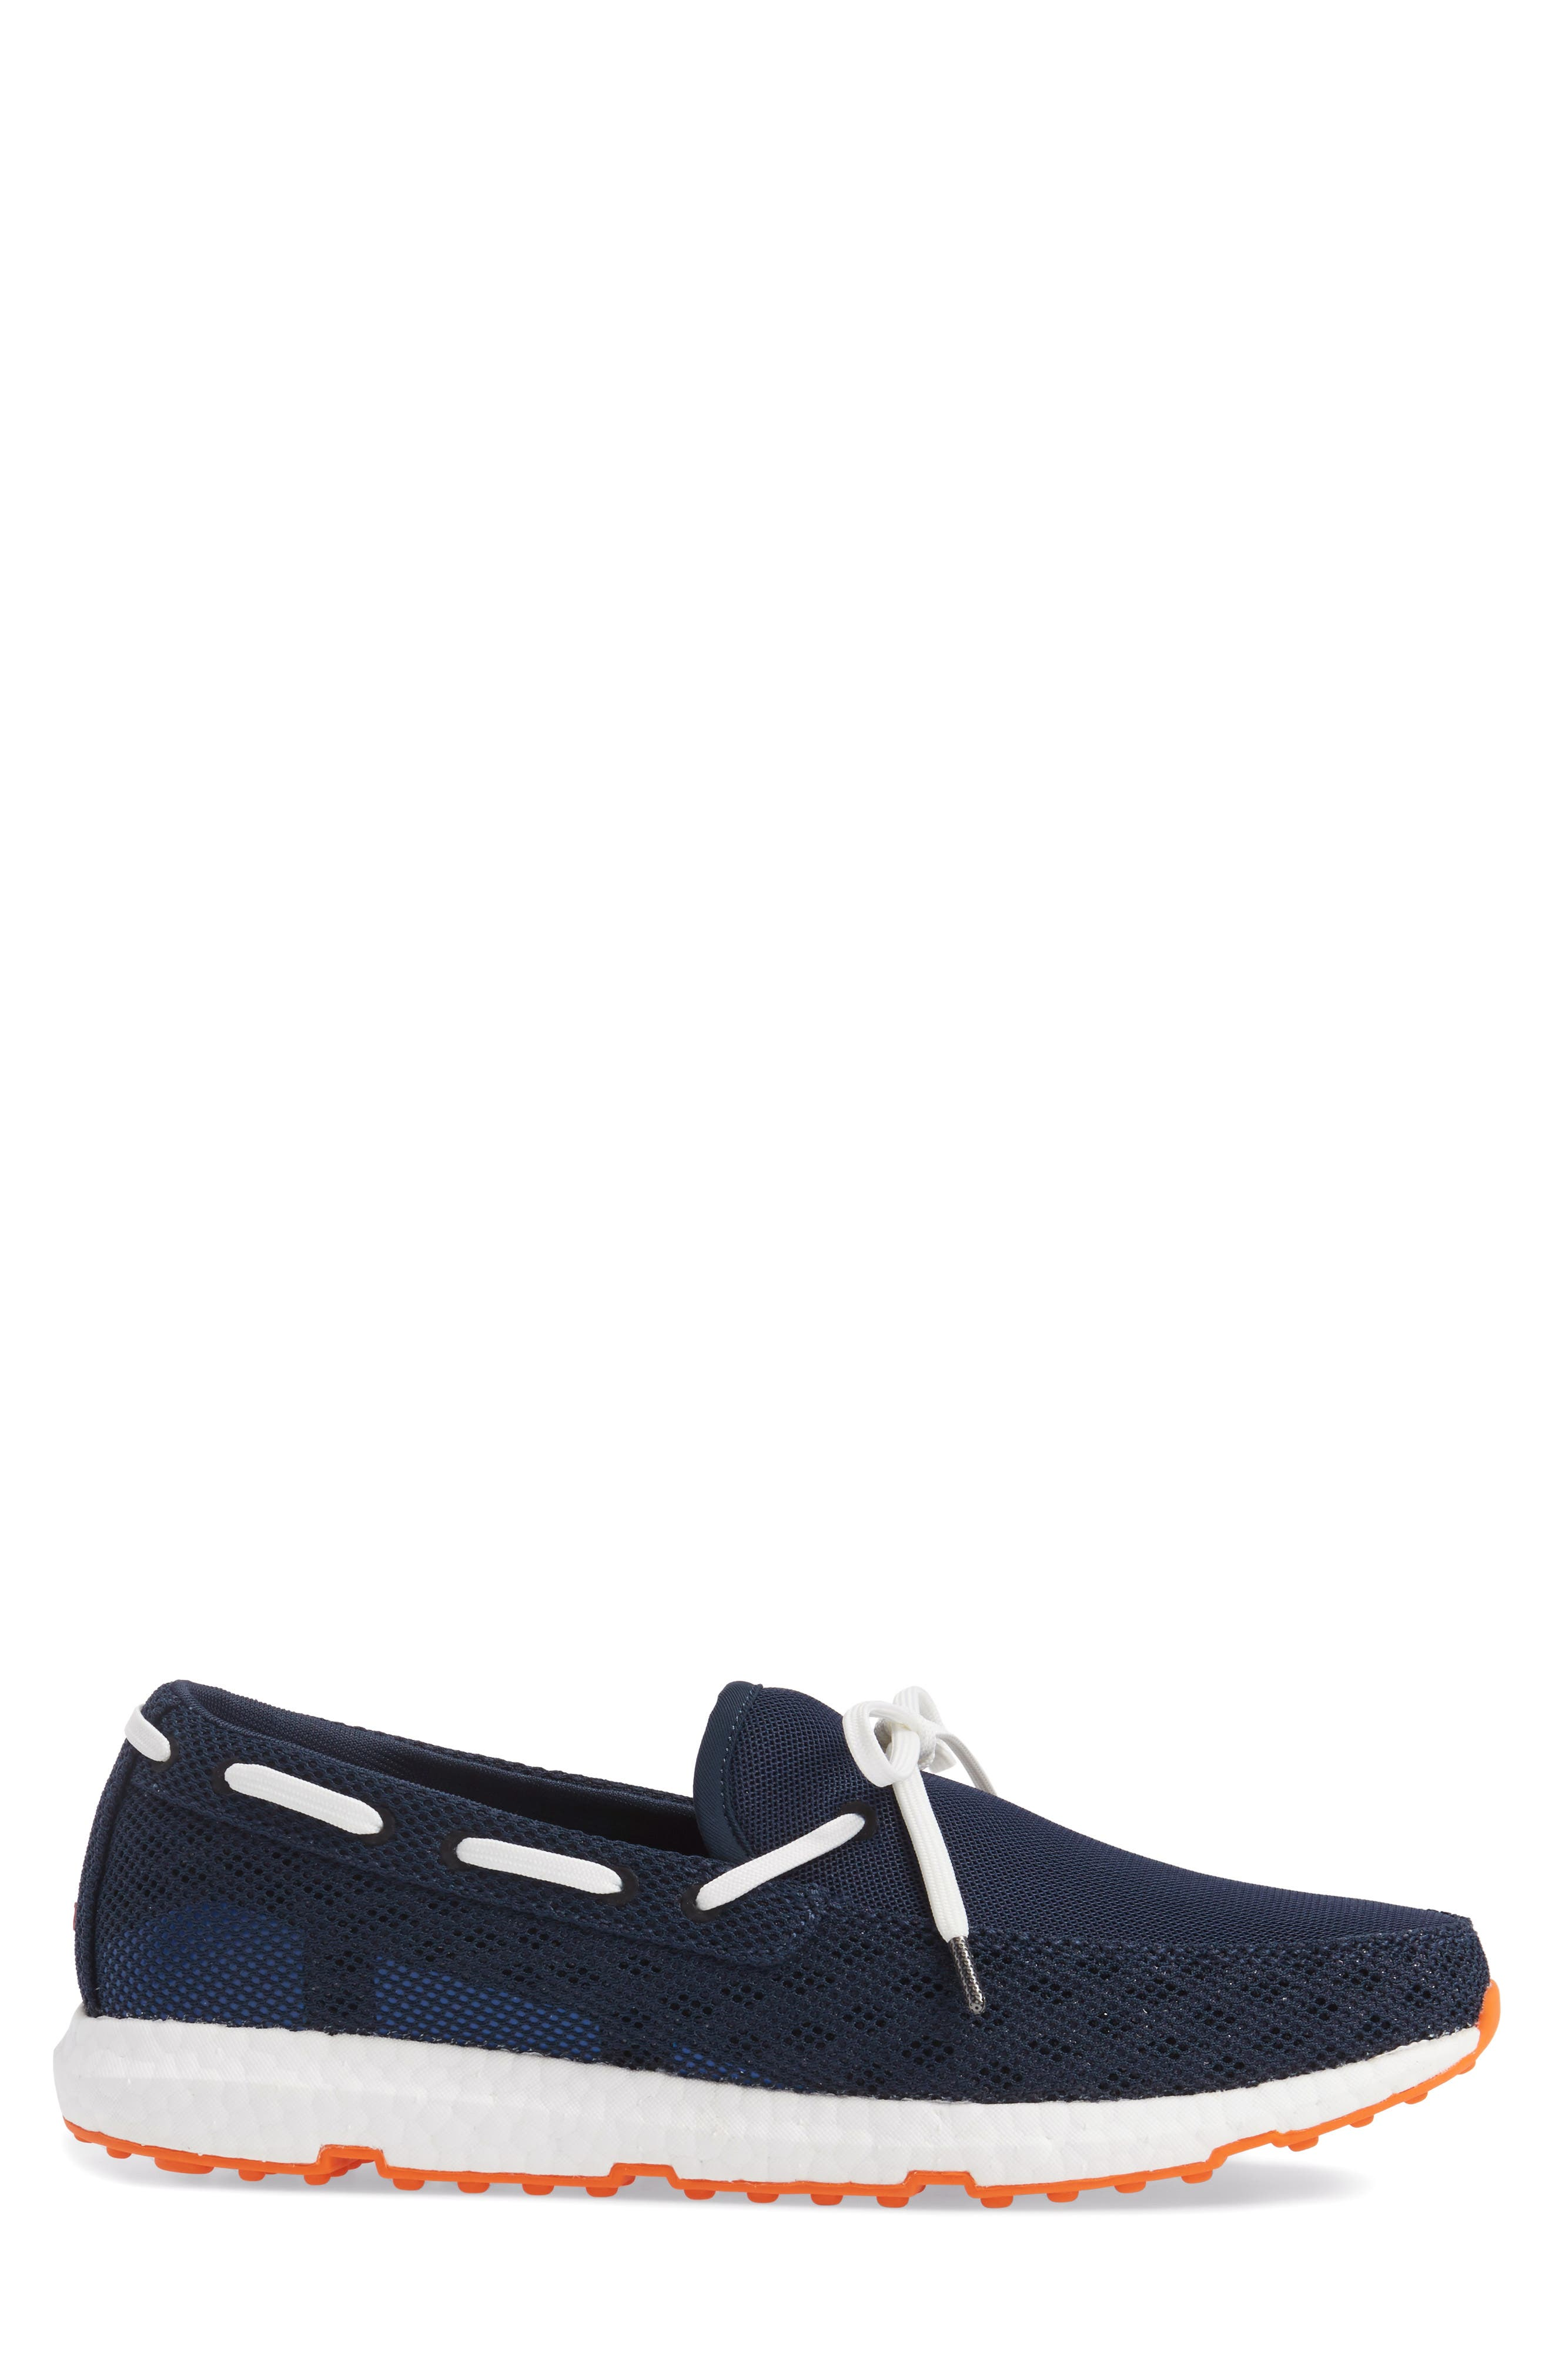 Breeze Loafer,                             Alternate thumbnail 3, color,                             Navy/ Orange Fabric